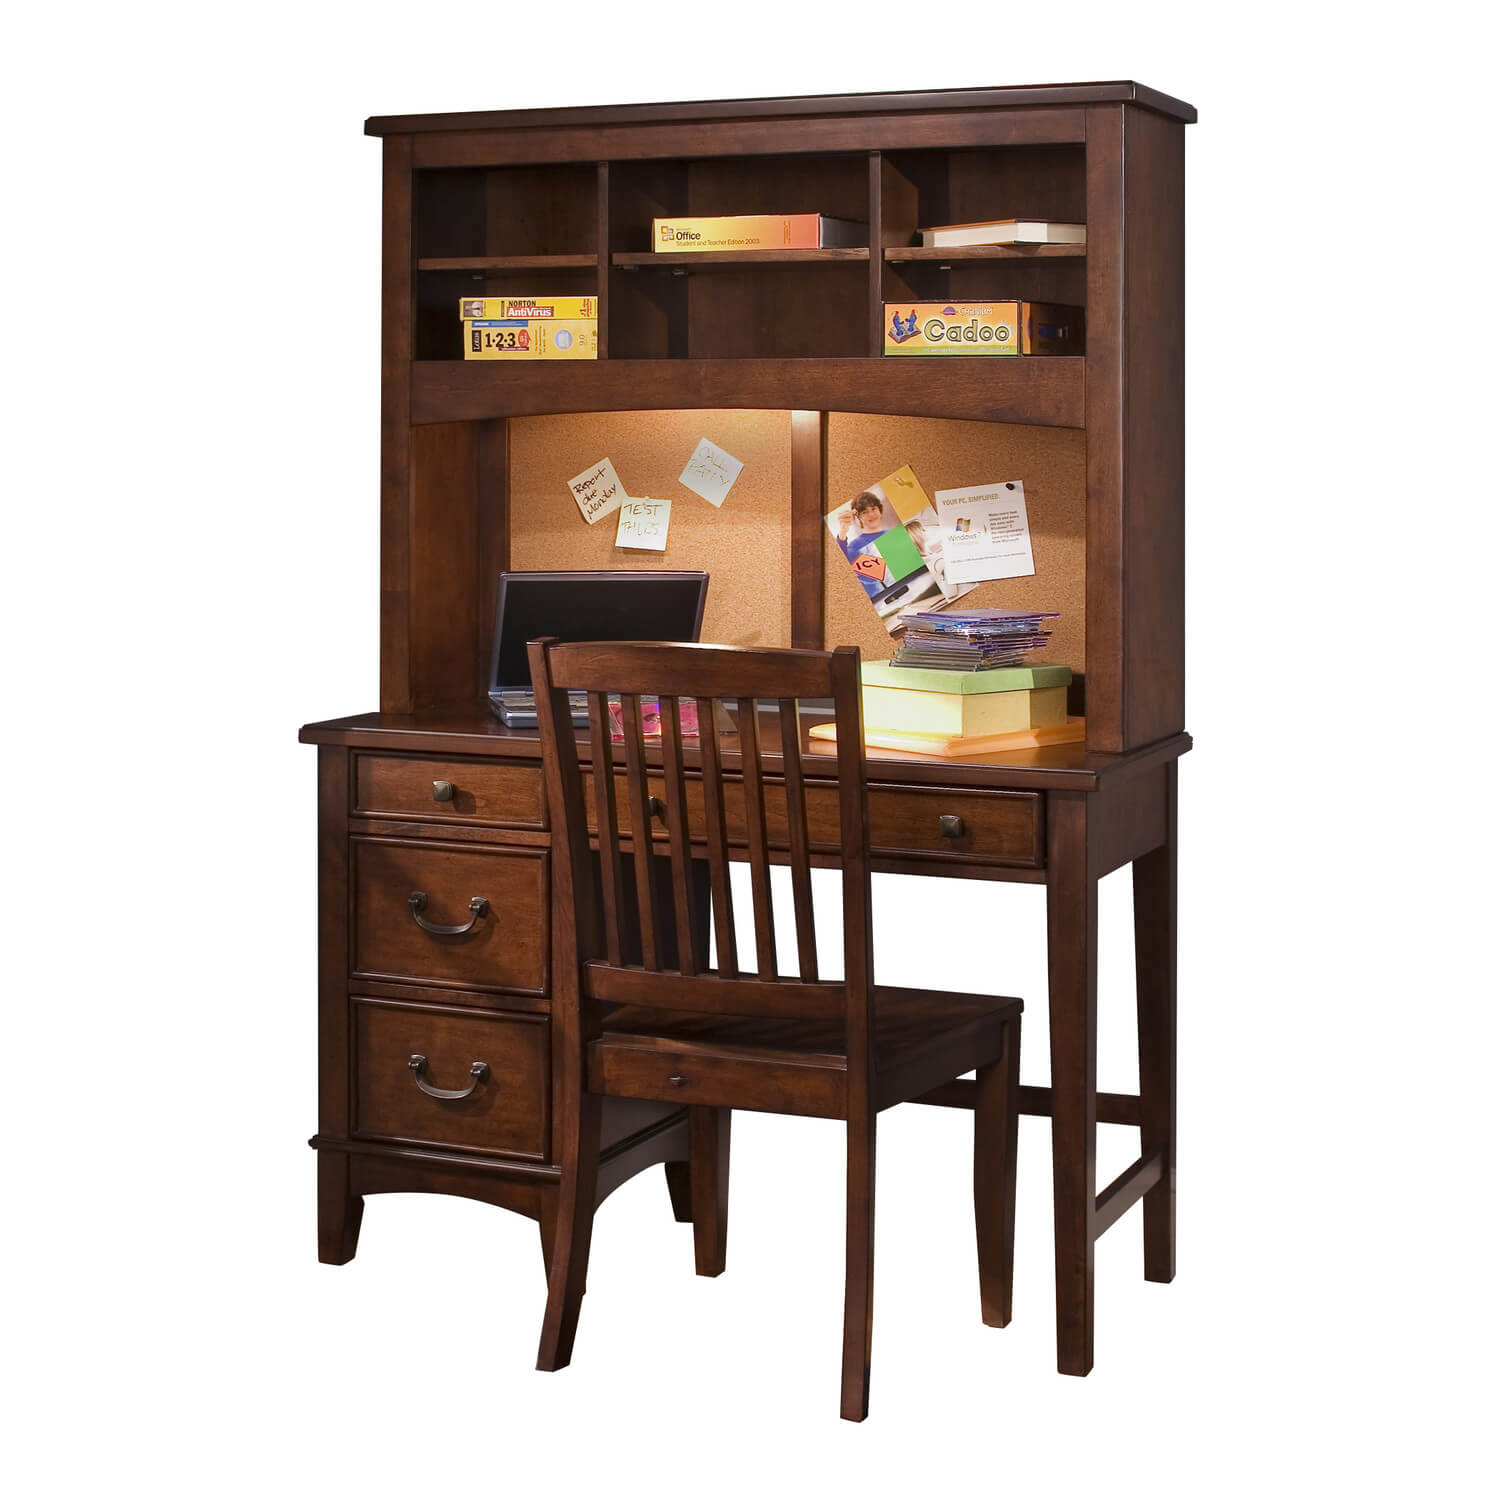 This sturdy wooden bookcase desk has plenty of drawers to store schoolwork and shelves above to store books.